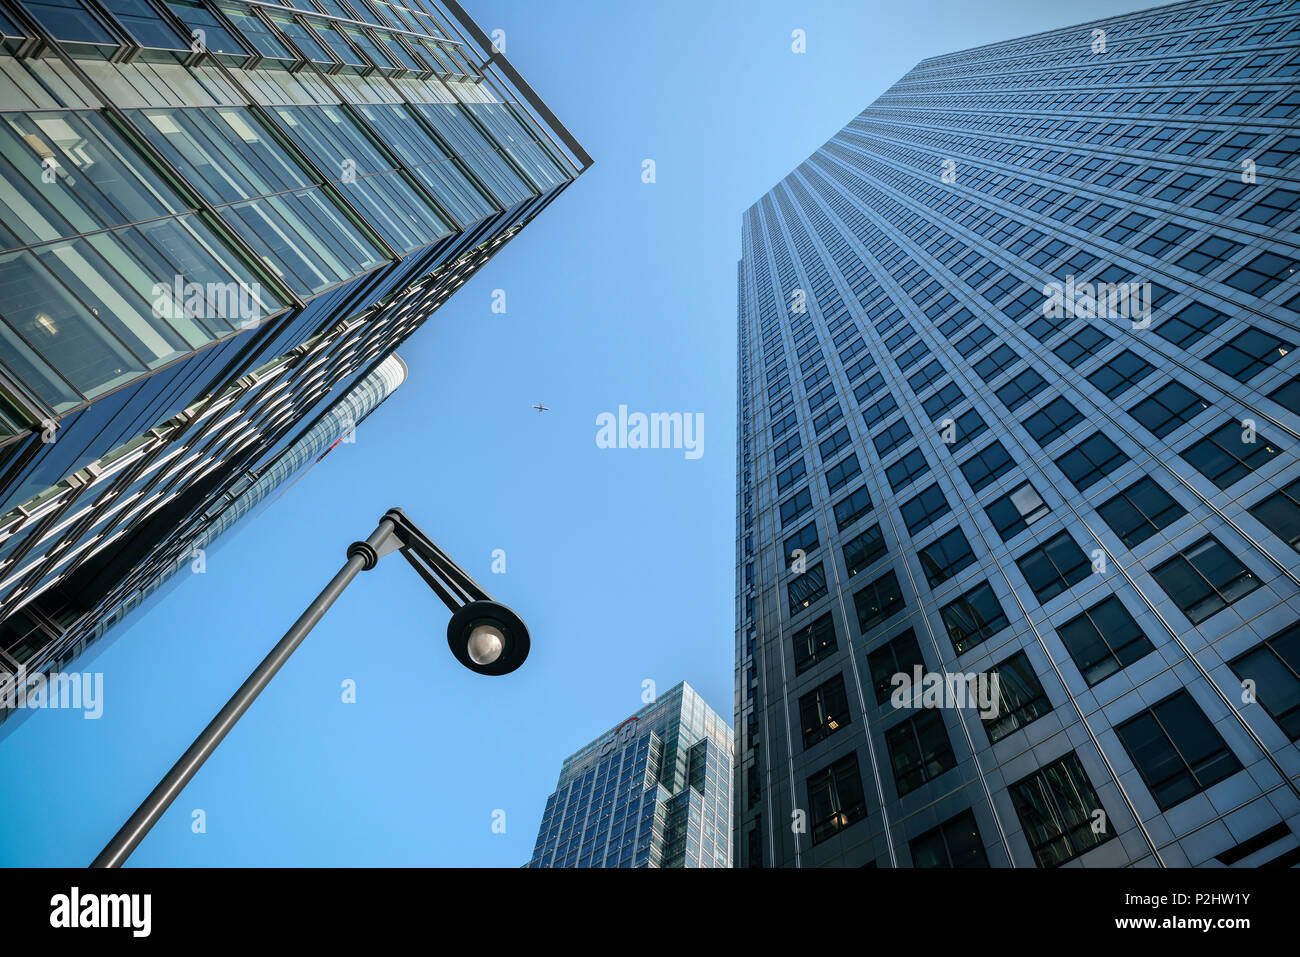 view upwards to bank skyscrapers, Canary Wharf new financial district, City of London, England, United Kingdom, Europe - Stock Image